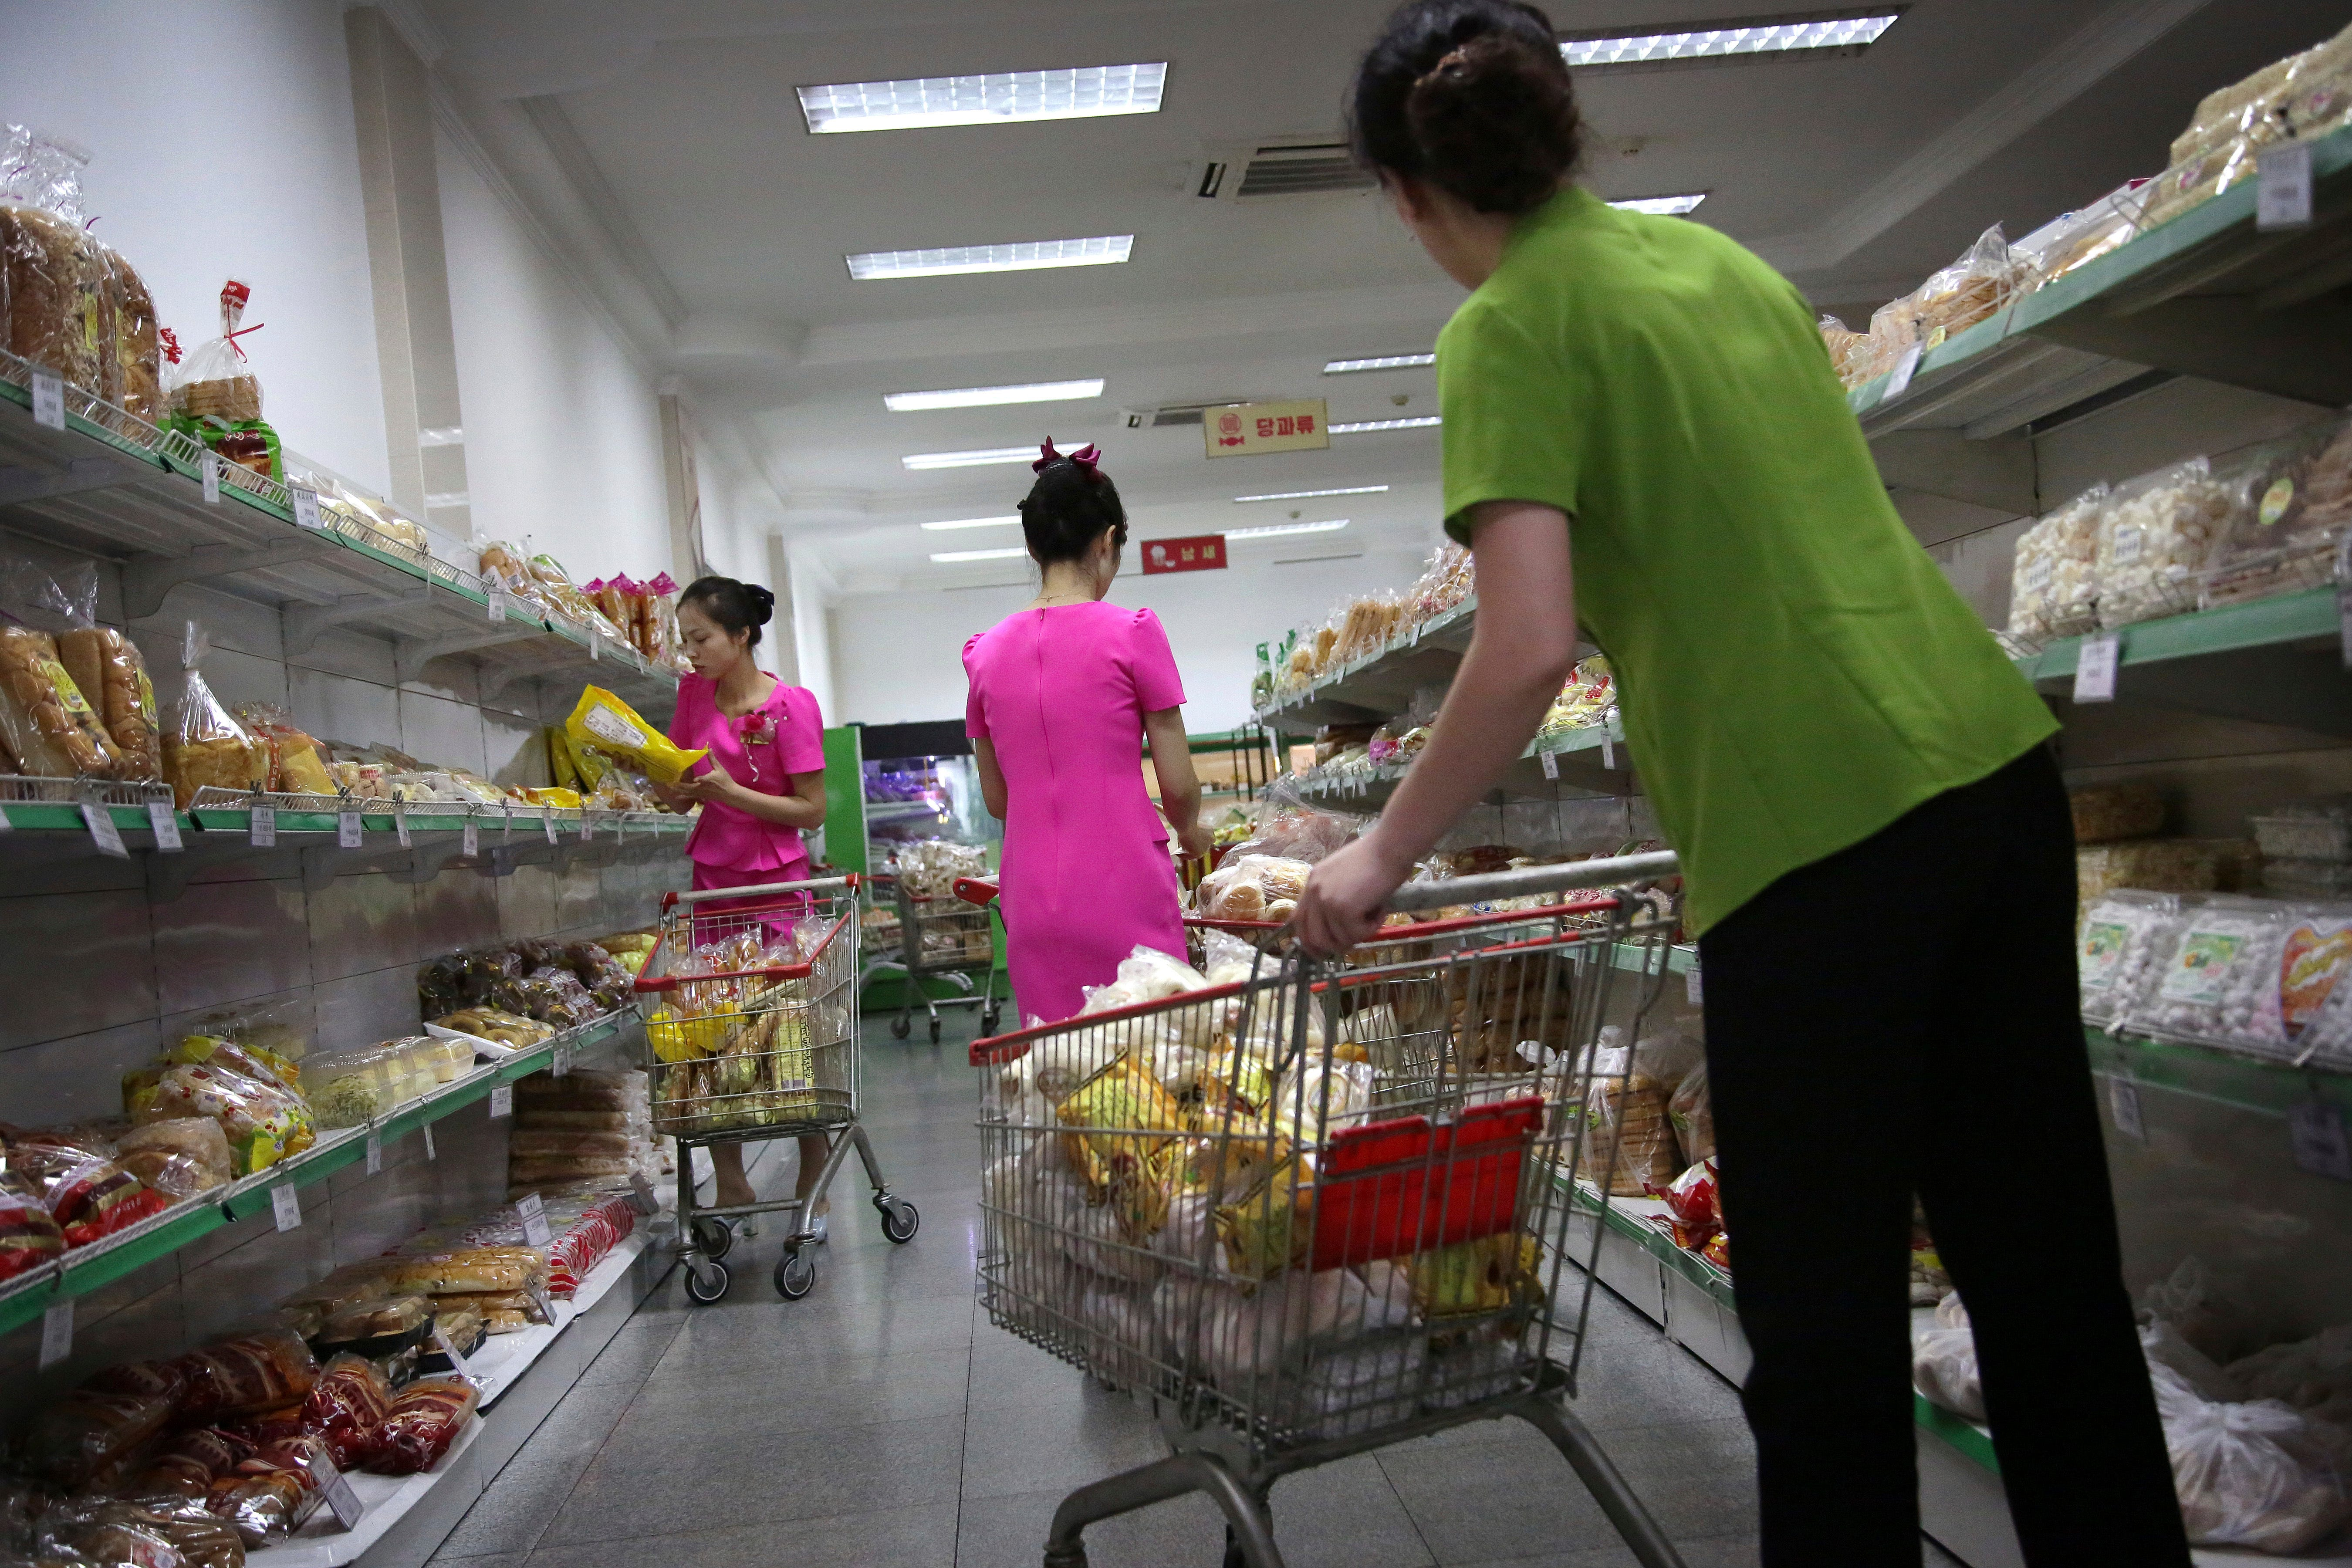 North Korean markets generate millions and may bring profound social change, report says